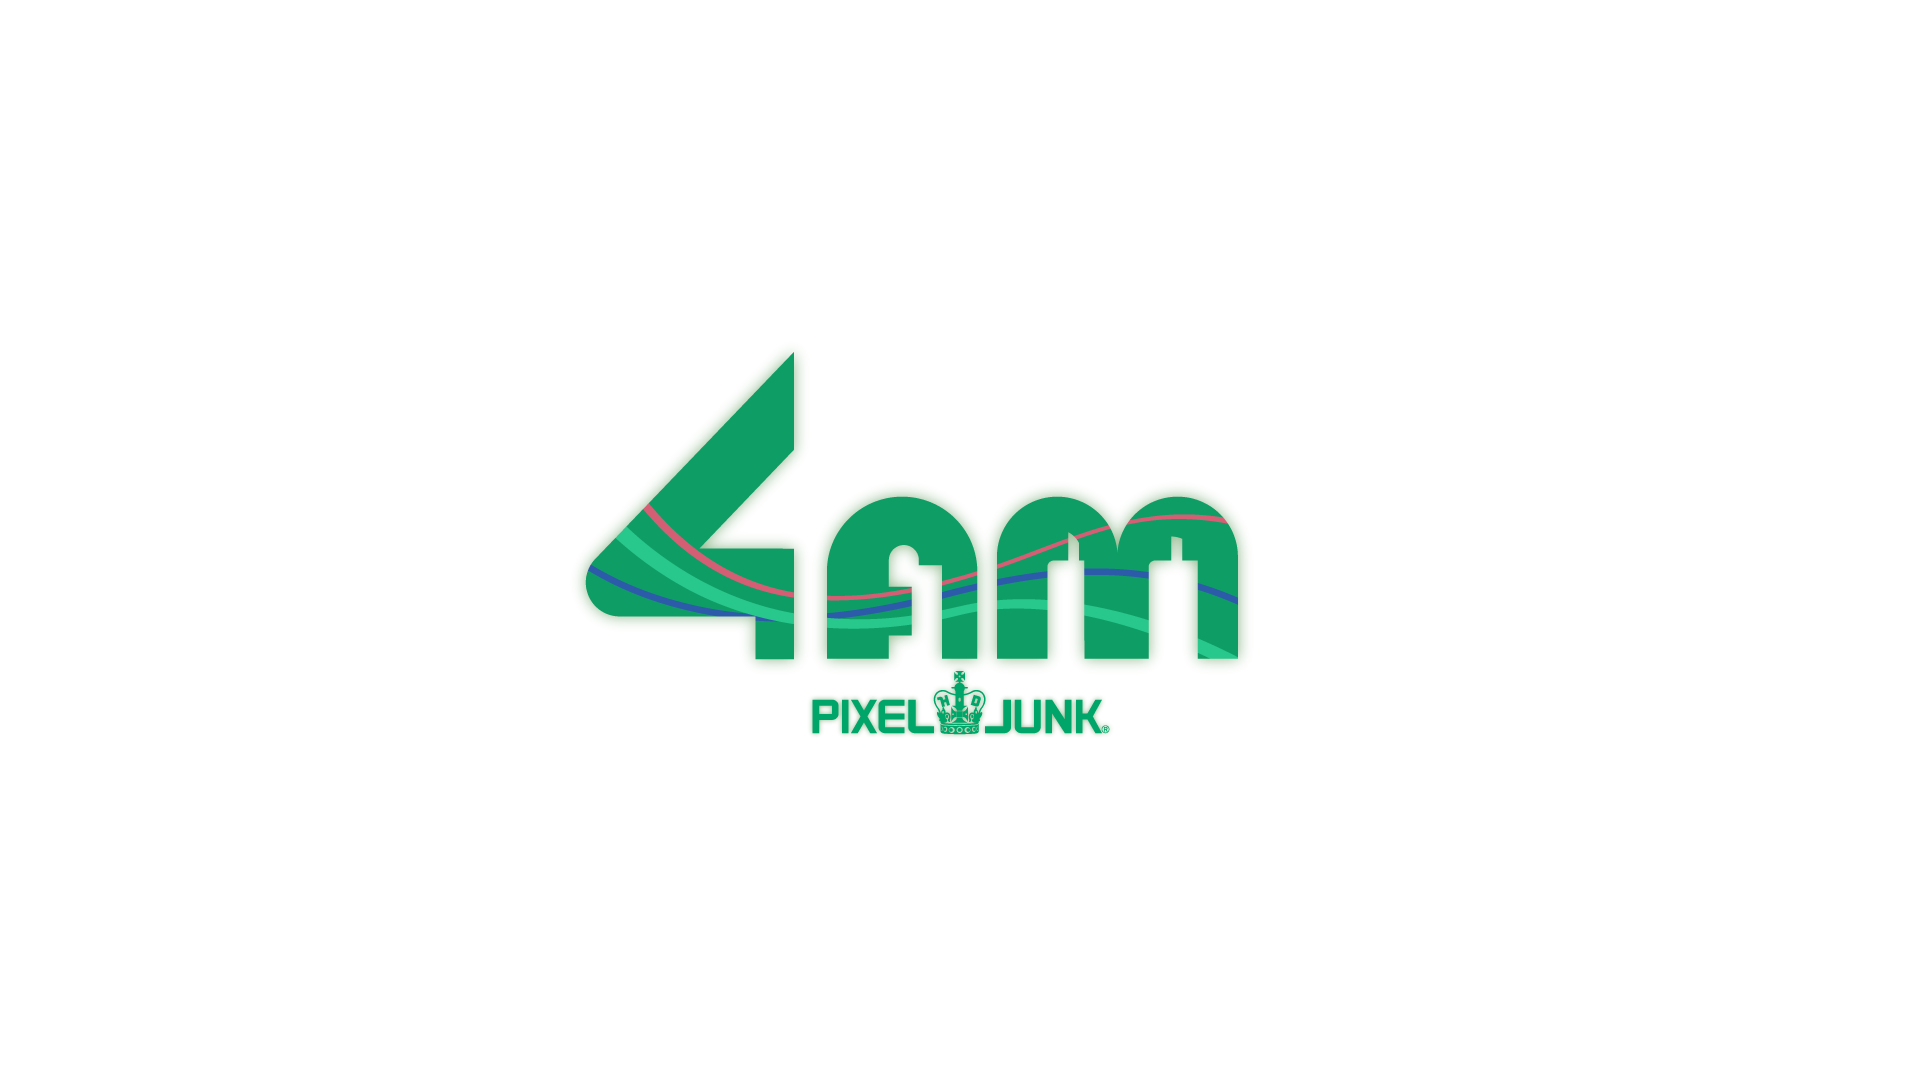 Box art - PixelJunk 4am